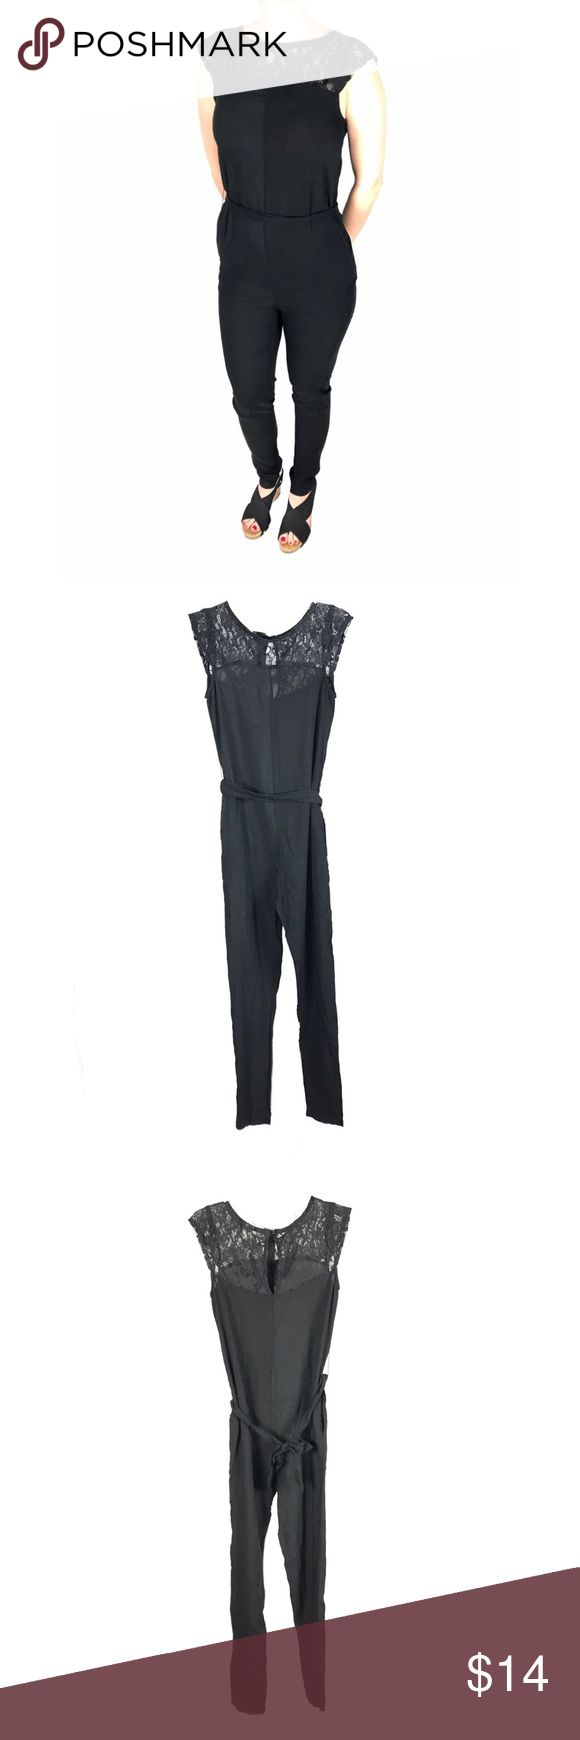 "Black jumpsuit one-piece with lace detail One-piece romper pantsuit, belted at waist, with lace detail at shoulders/cap sleeves. Button closure at neck. Tighter fit from thigh to ankle, looser around waist. 28"" inseam. EUC. Love Tease Pants Jumpsuits & Rompers"